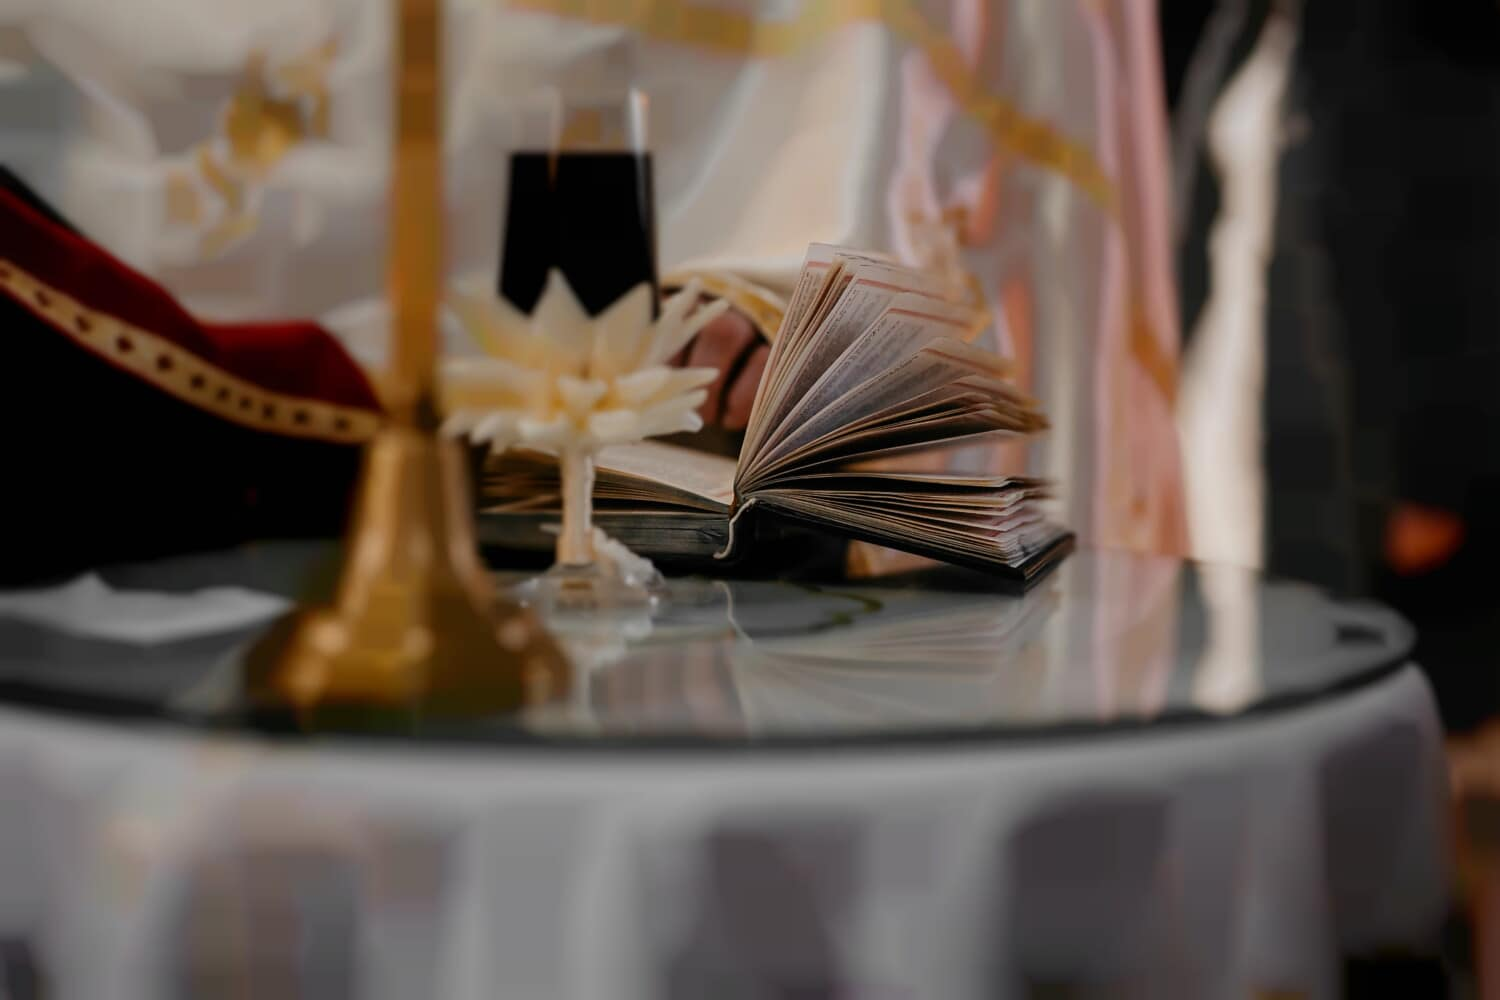 bible, priest, reading, church, christianity, religion, indoors, interior design, luxury, candle